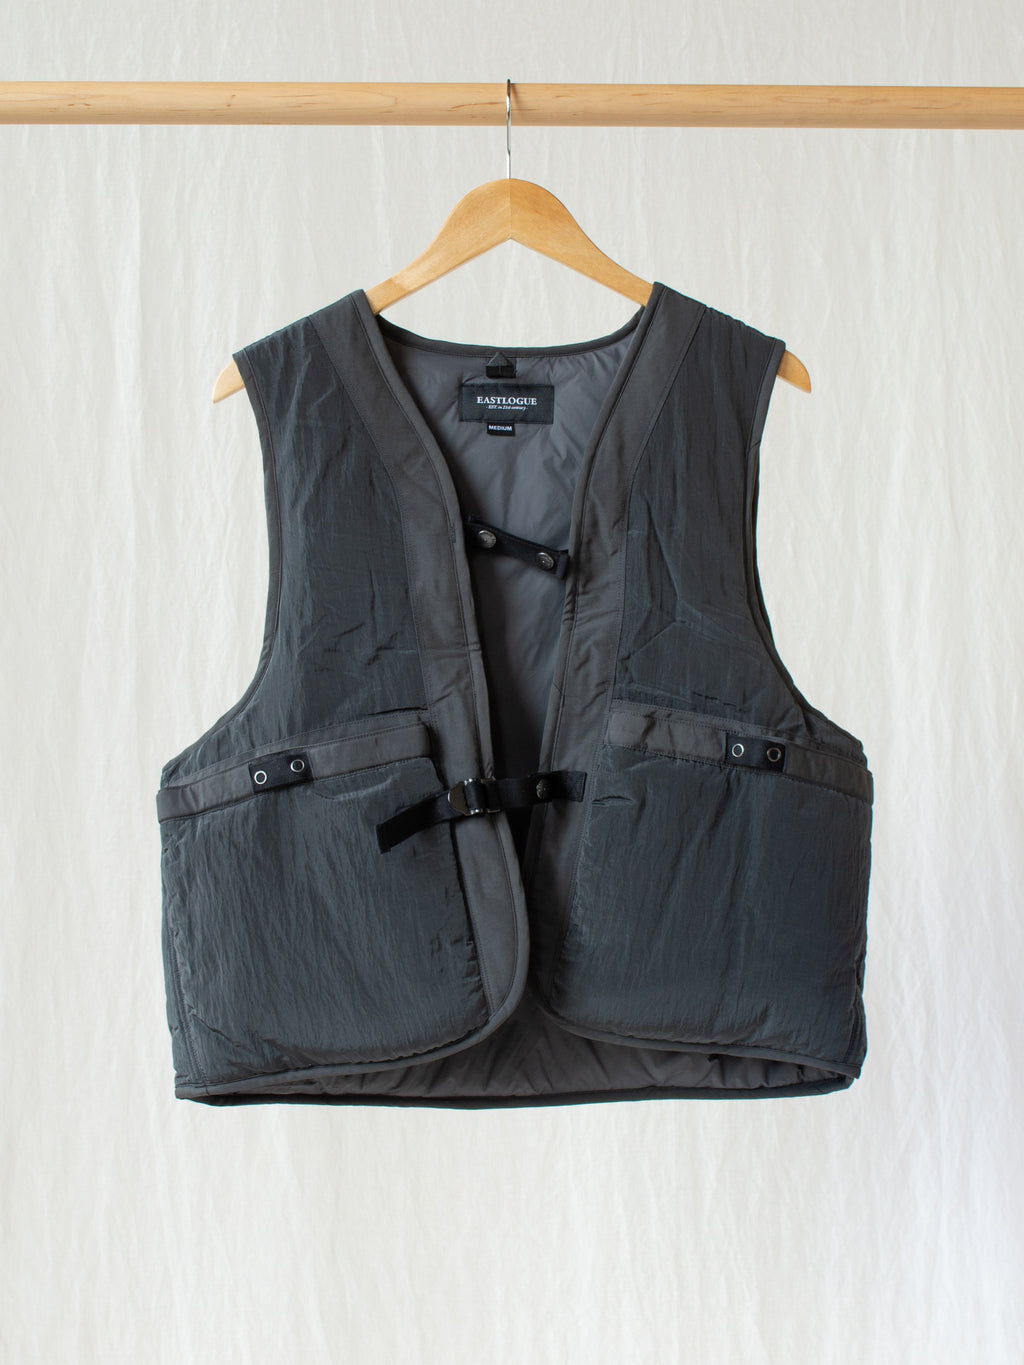 Namu Shop - Eastlogue Wagon Vest - Gray Washer